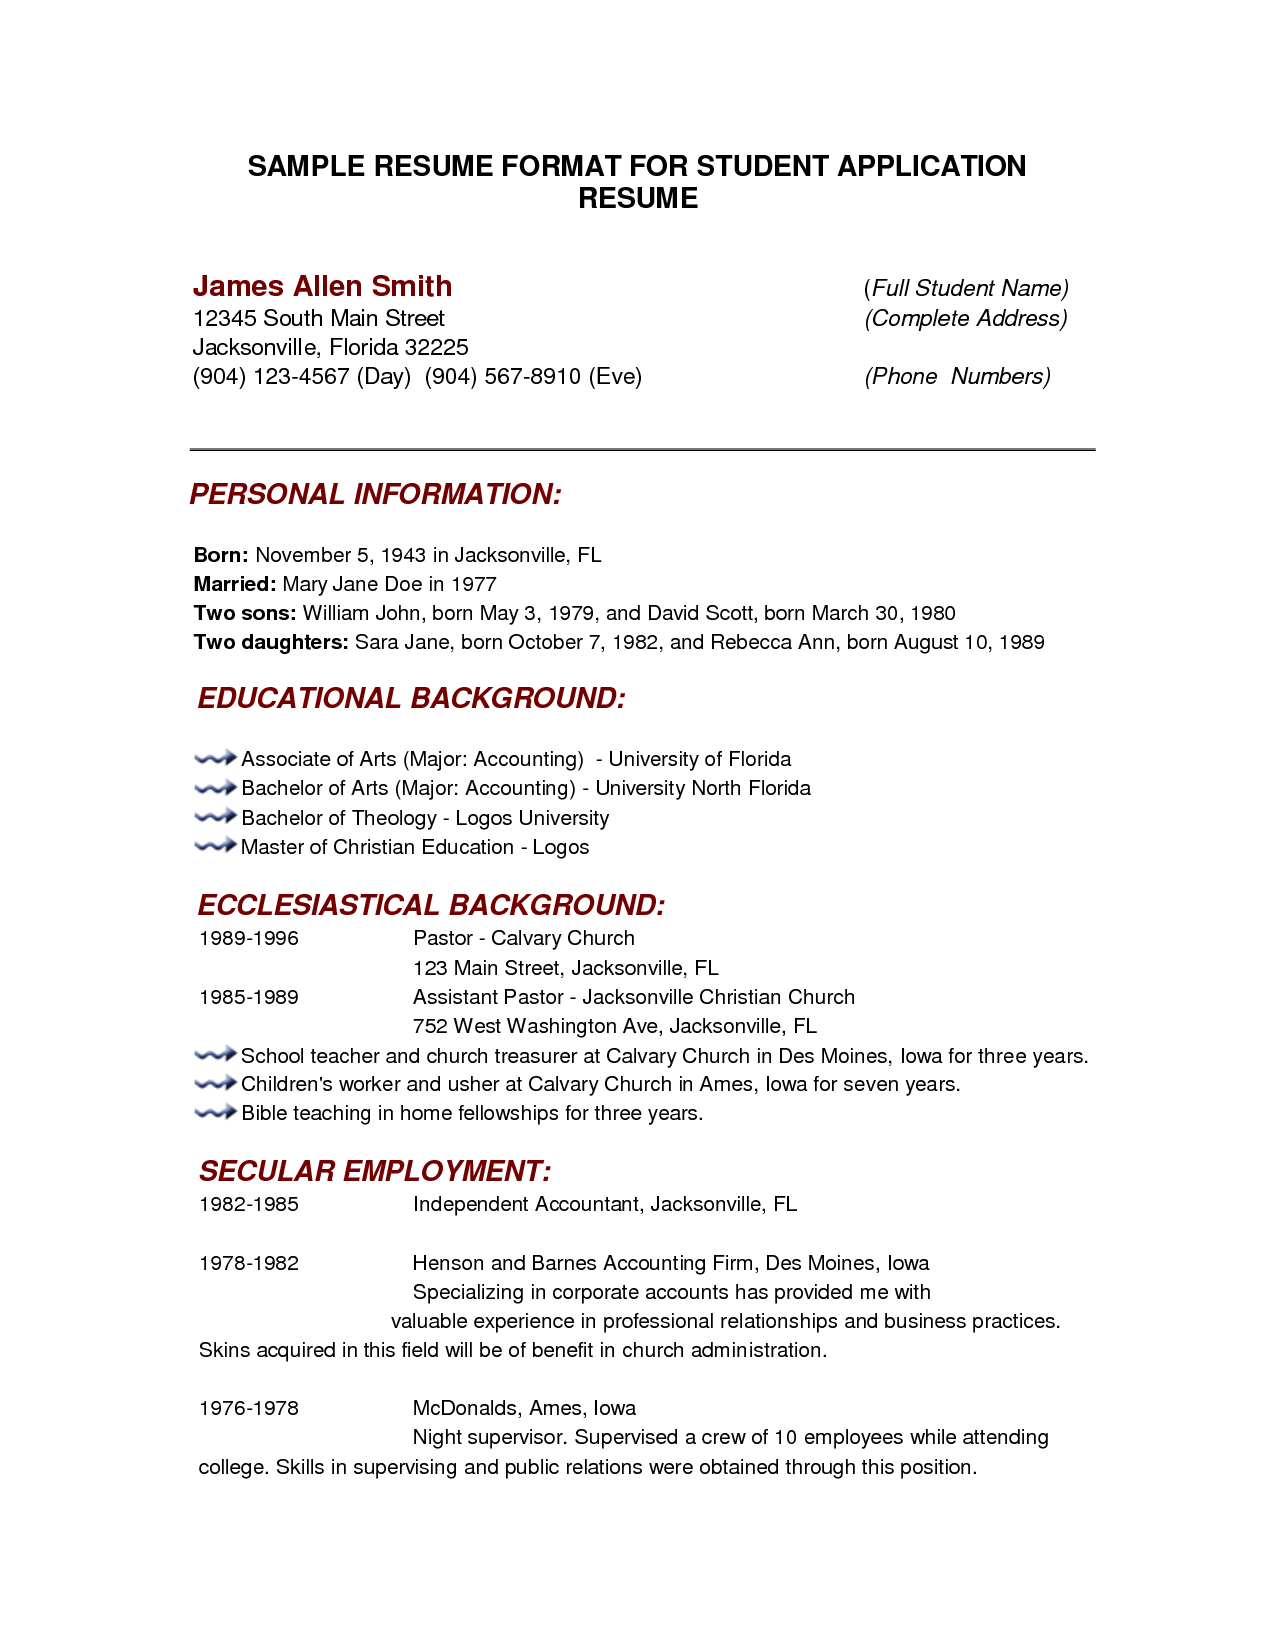 Elegant Full Block Resume Format Style For Business Letter Examples Basic Template  Free Samples Pertaining To Student Resume Format